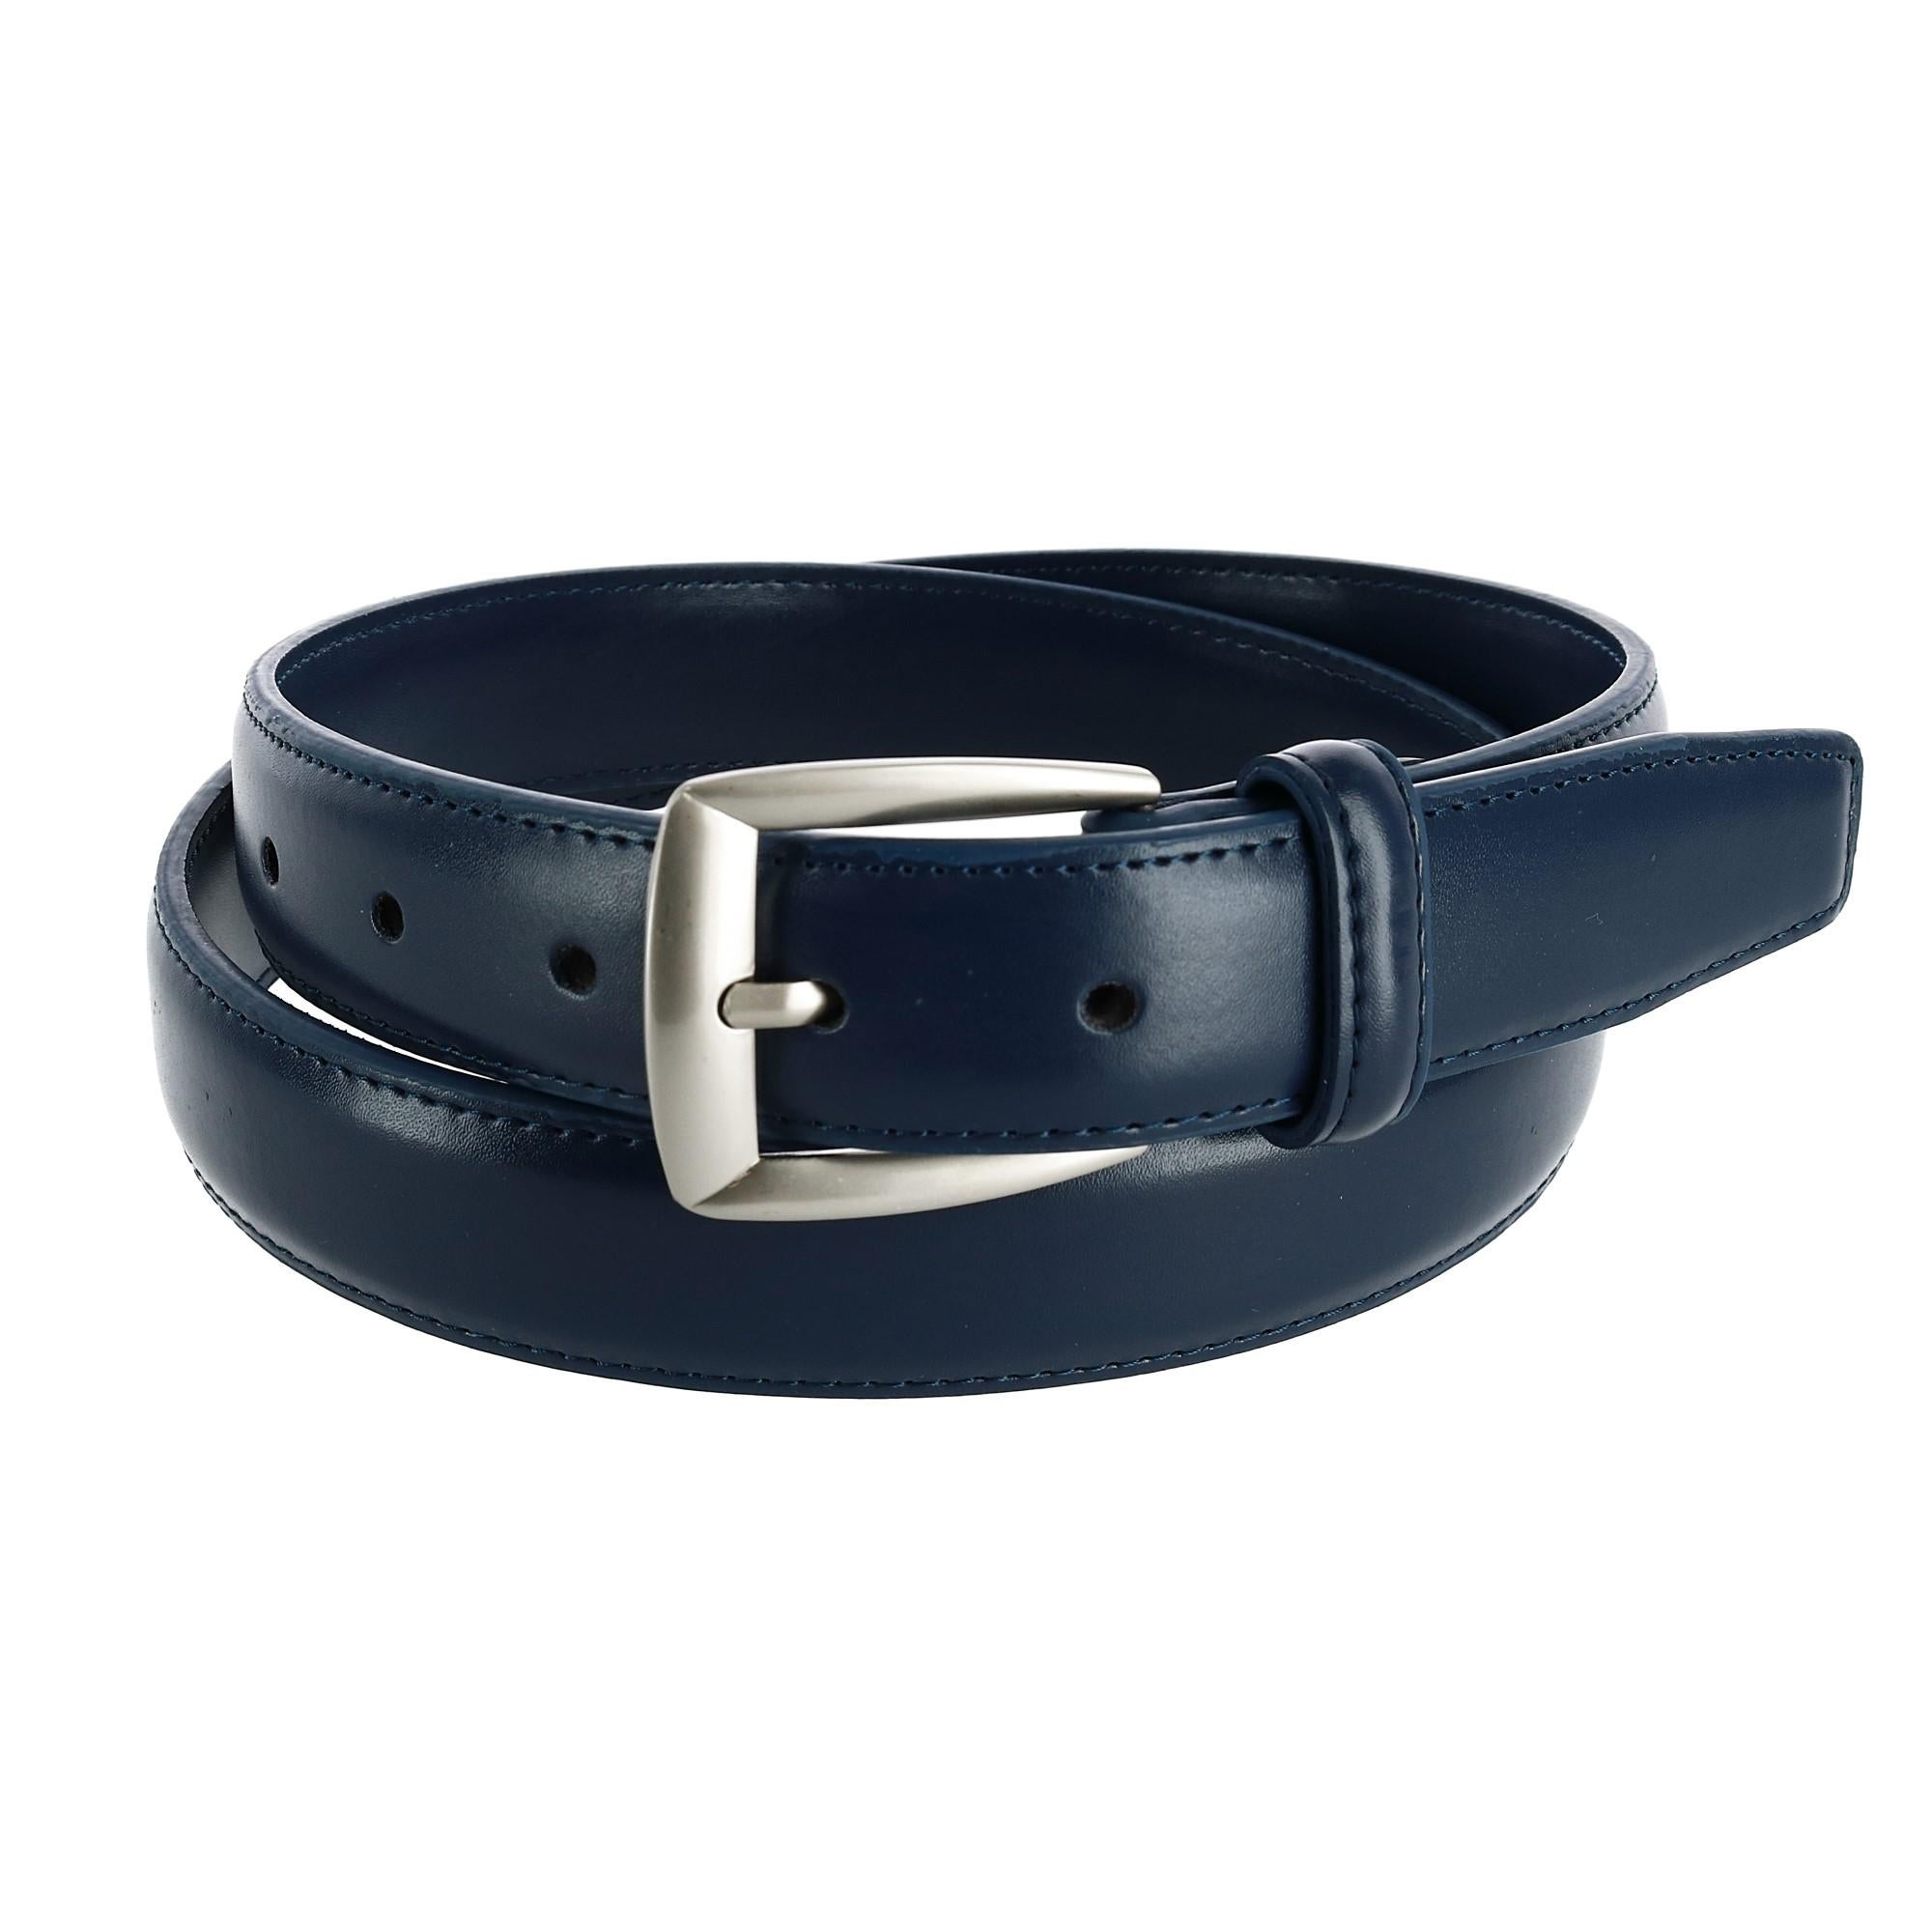 Pack of 2 CTM Kids Leather 1 inch Basic Dress Belt